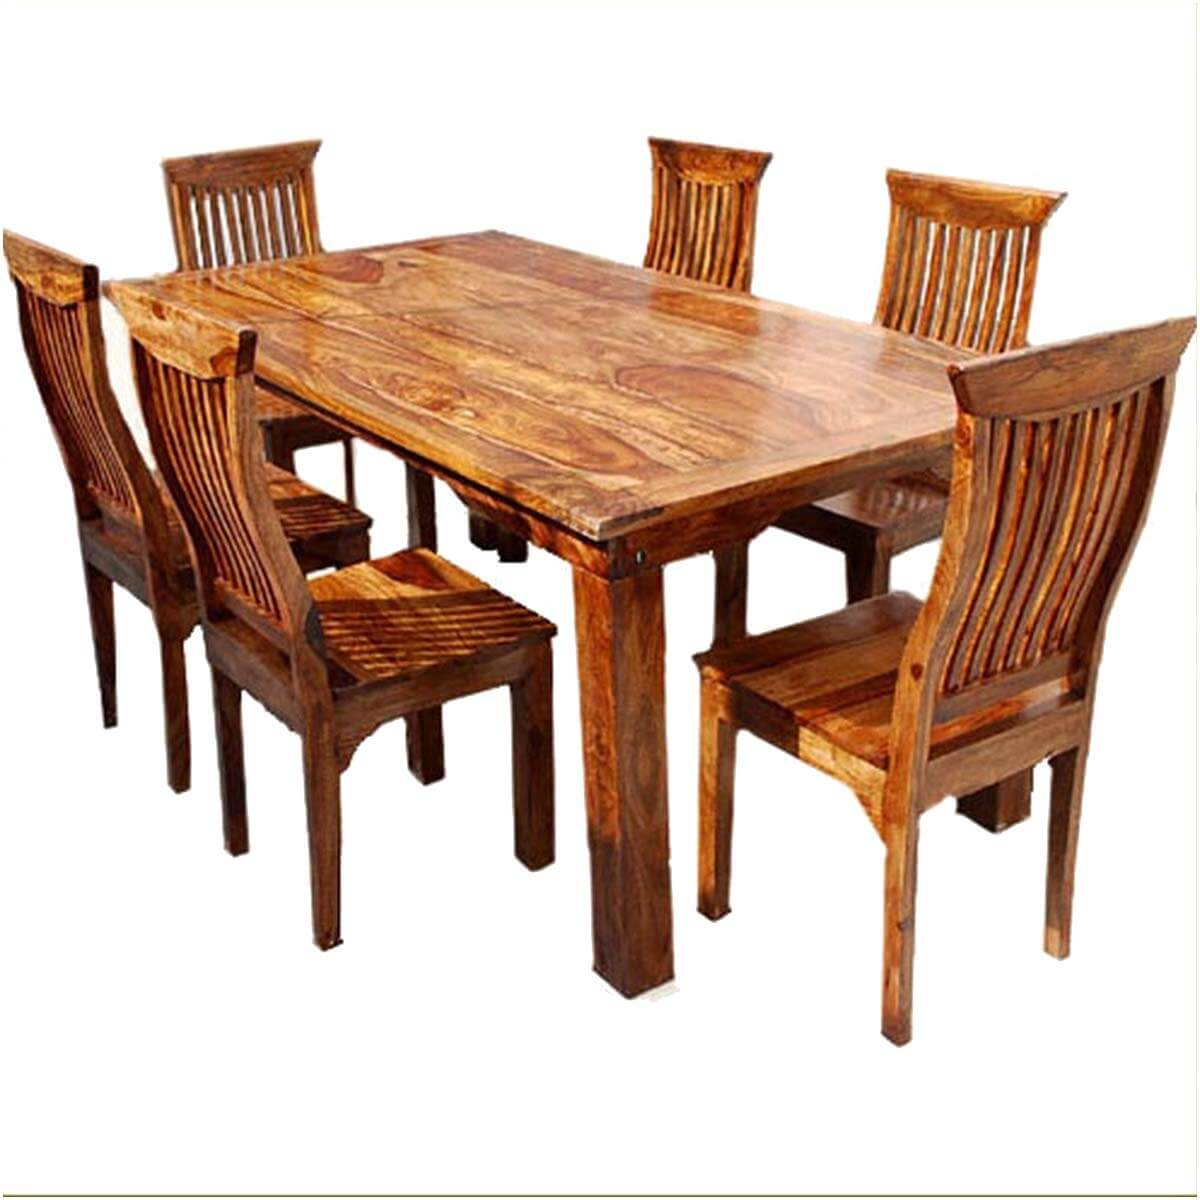 Dallas ranch solid wood rustic dining table chairs hutch set for Dining chairs and tables